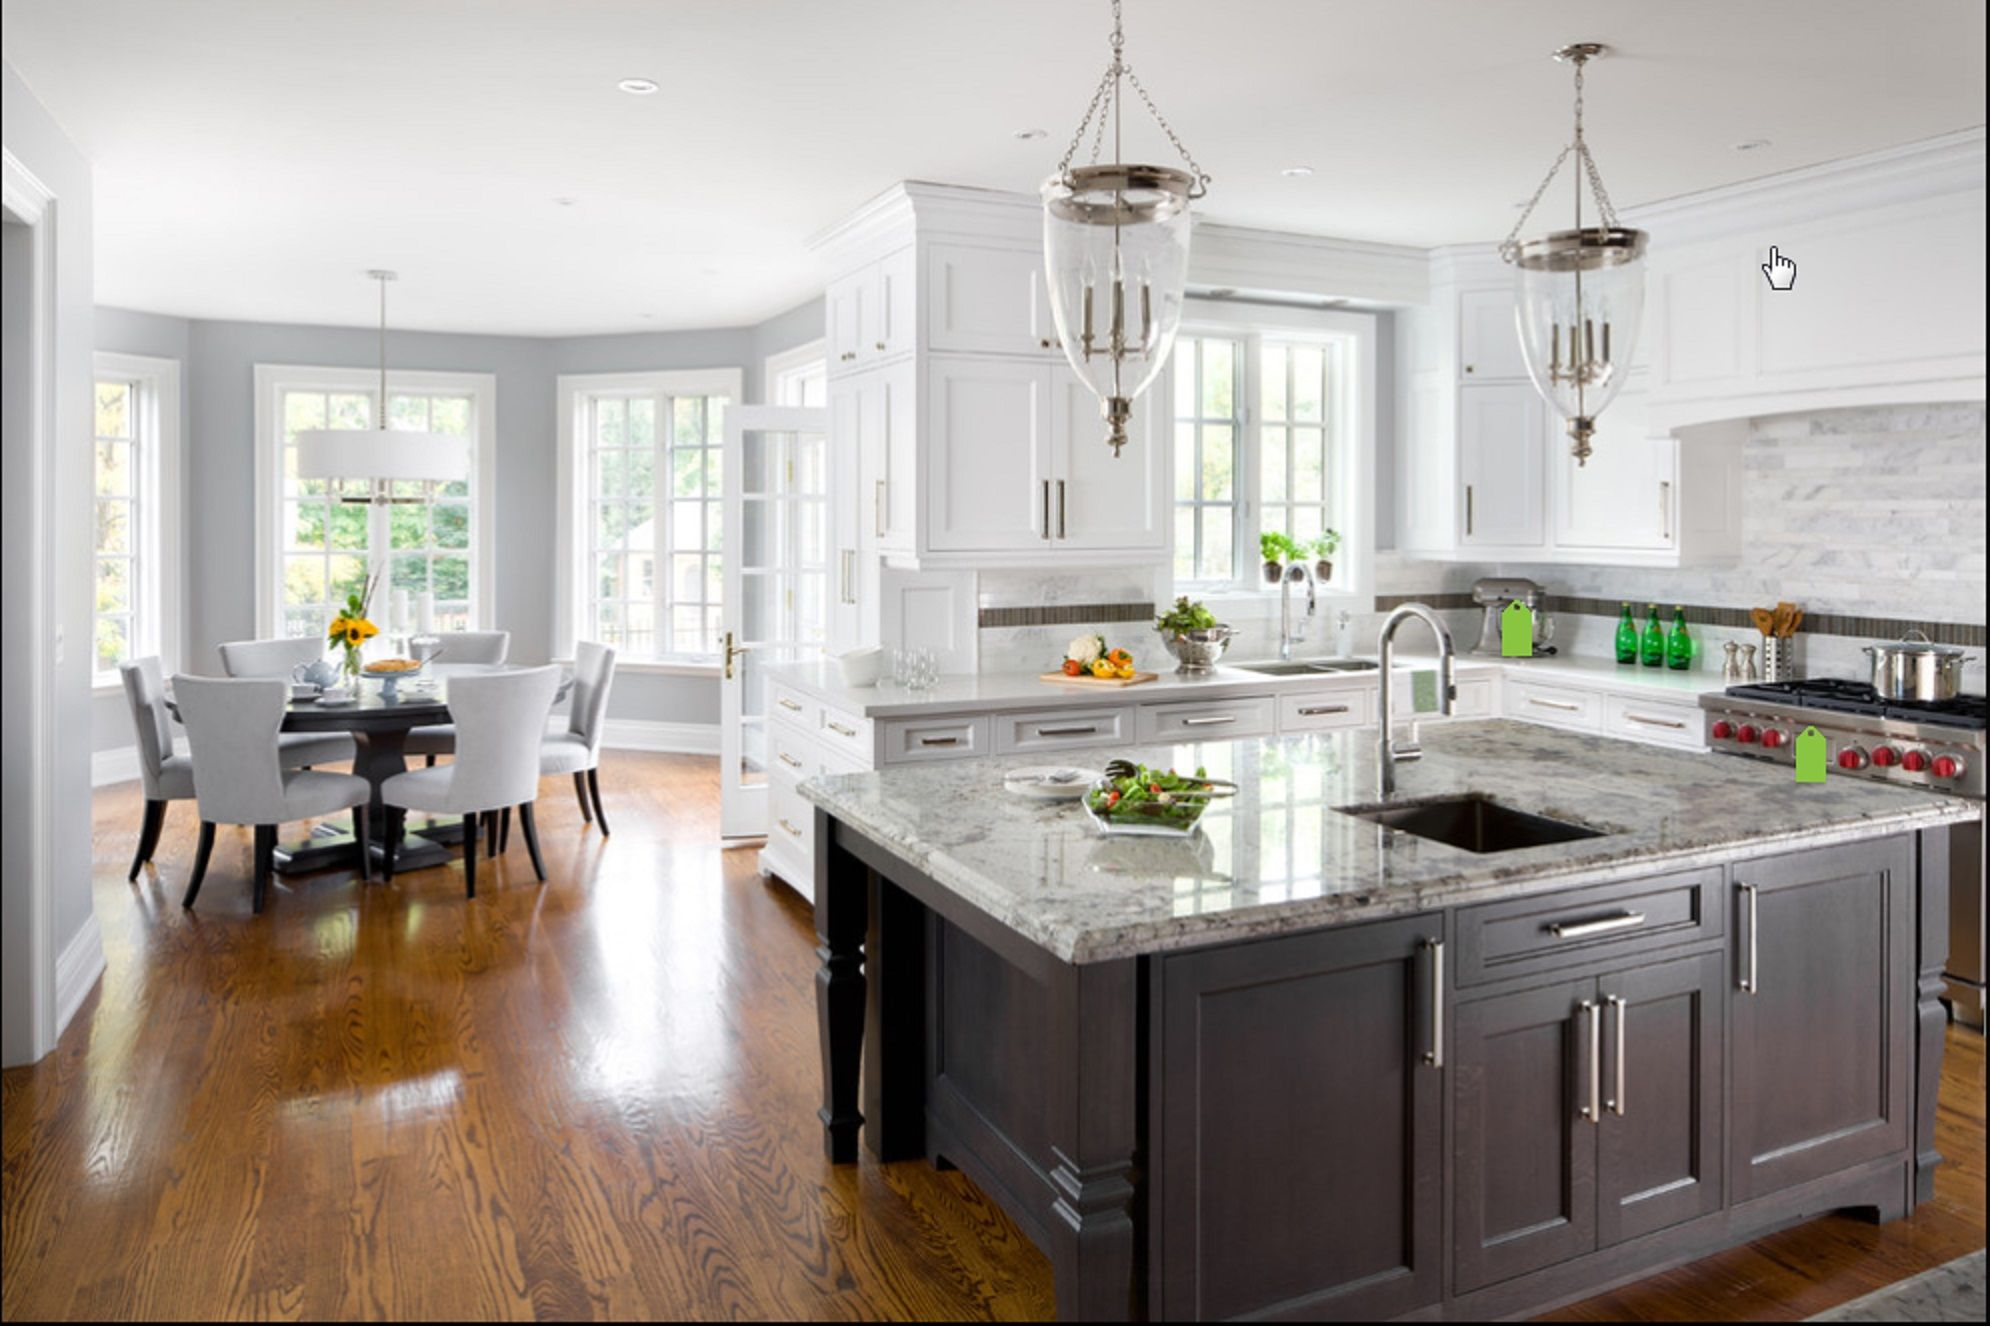 Superieur Hilary Farr Kitchen Remodels | Share I Love This. Especially The Dining  Room Table And